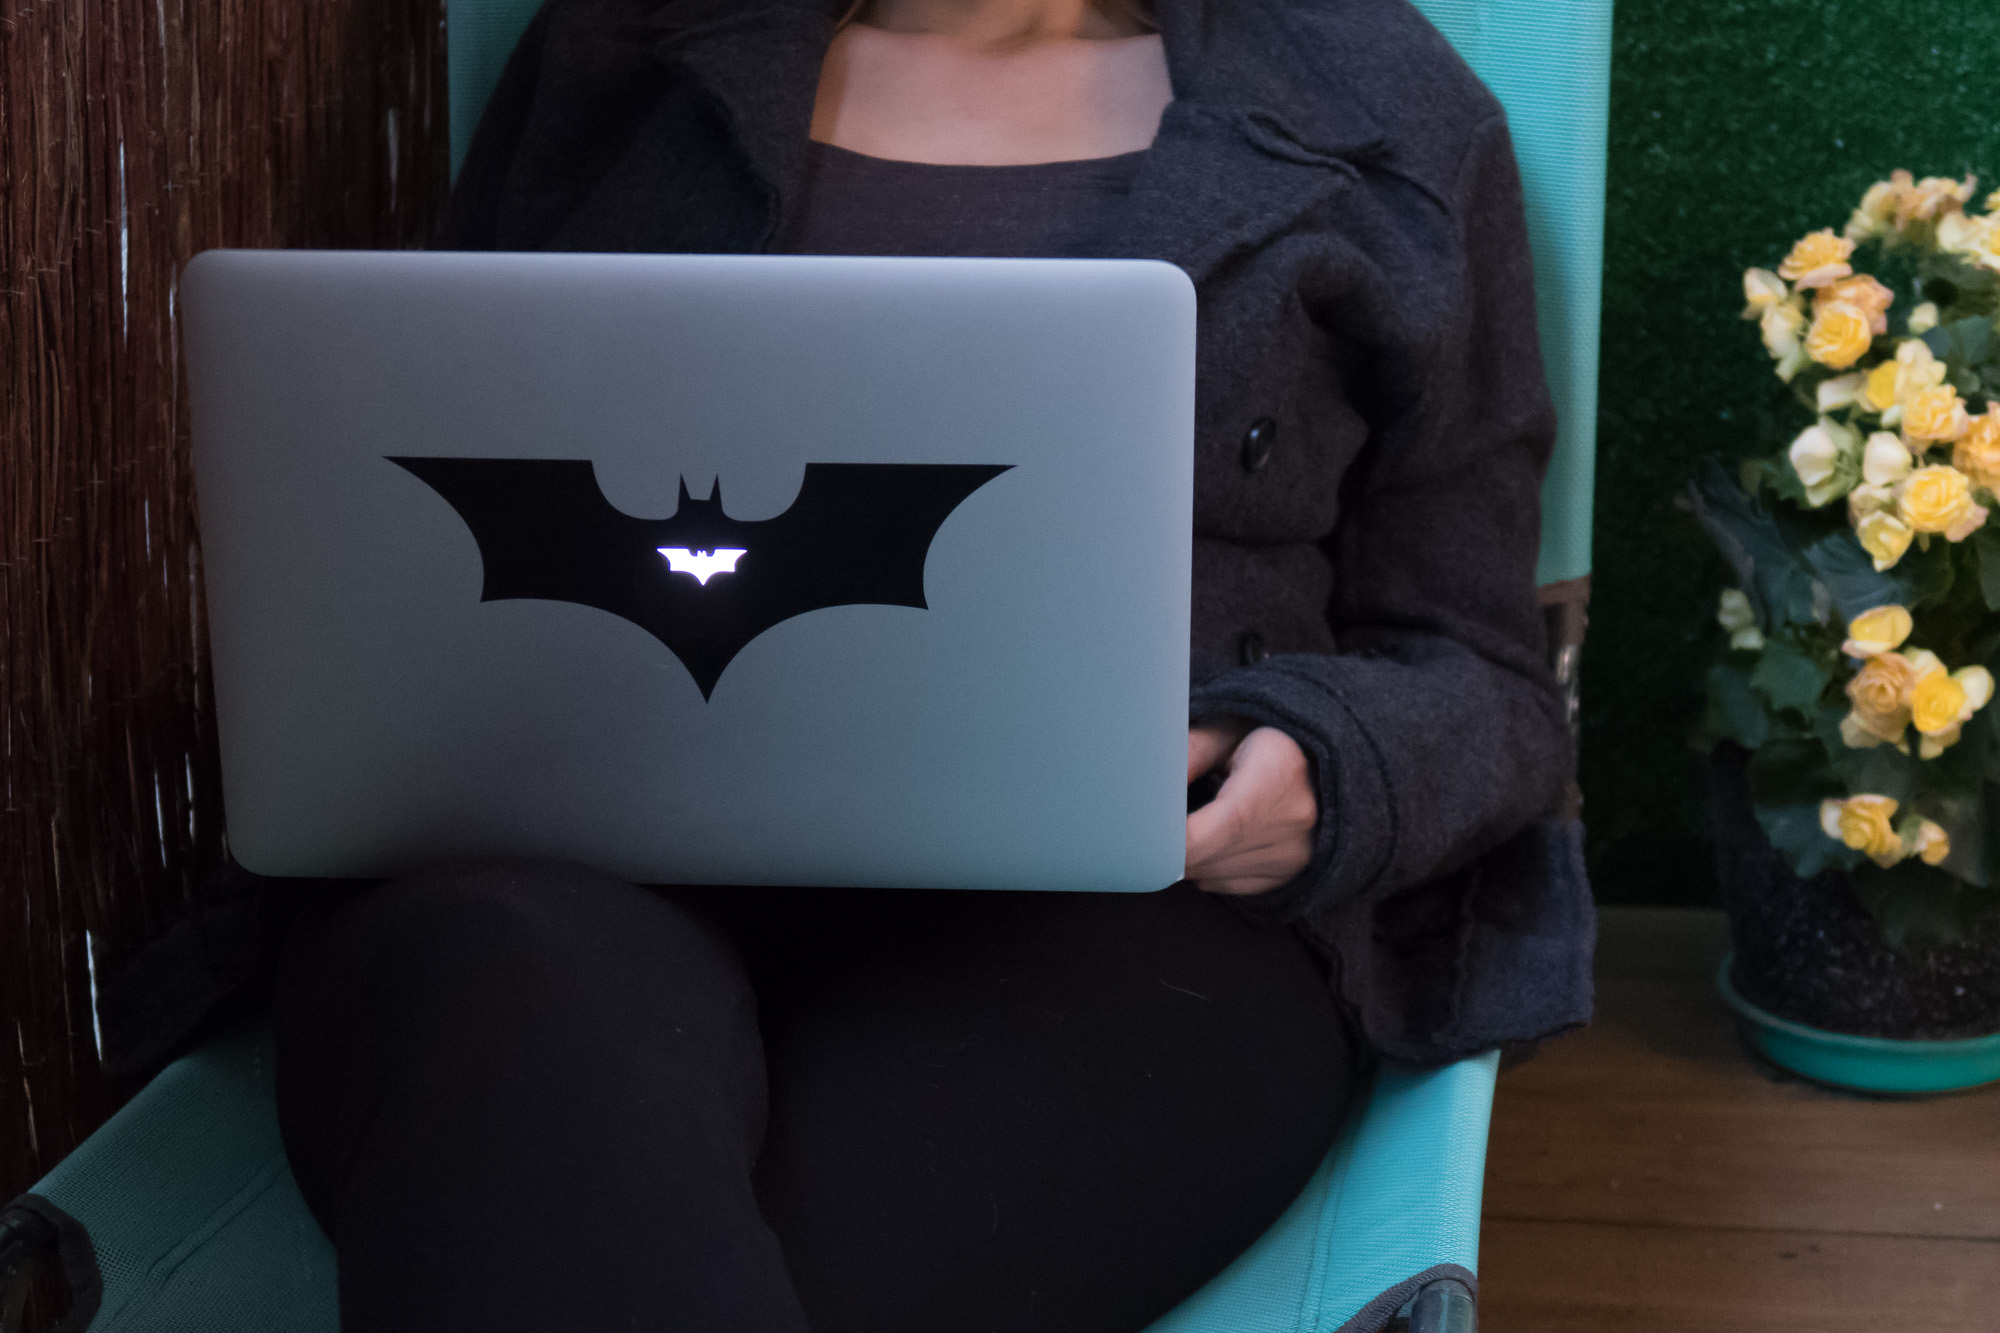 Picture of Laser-cut Laptop Stickers for MacBook and PC (6 Free Designs)